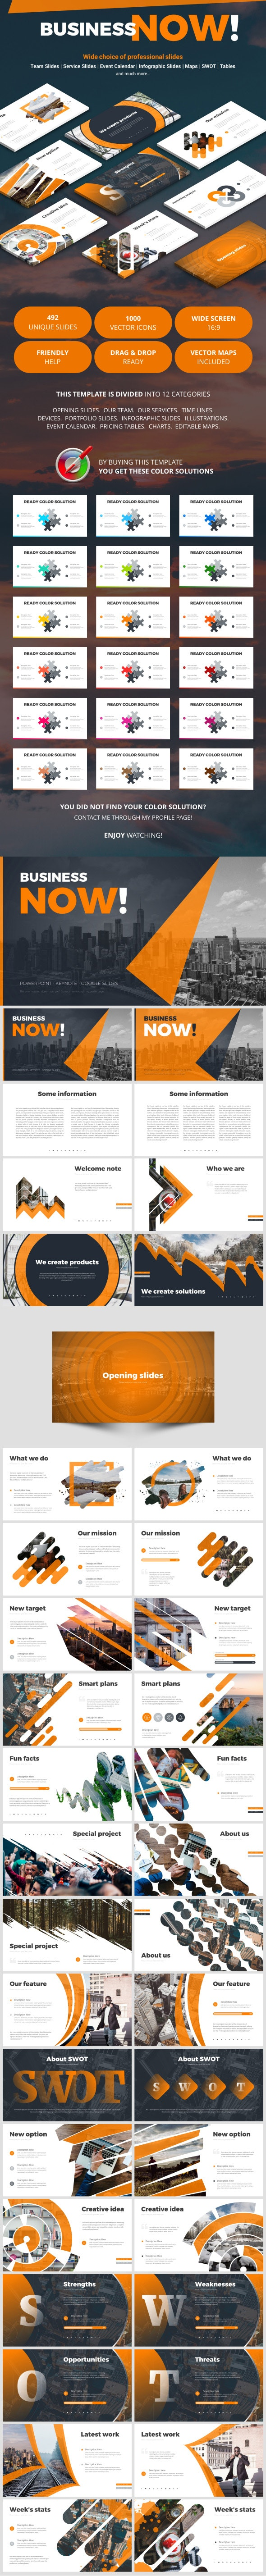 Business Now - Business Keynote Templates